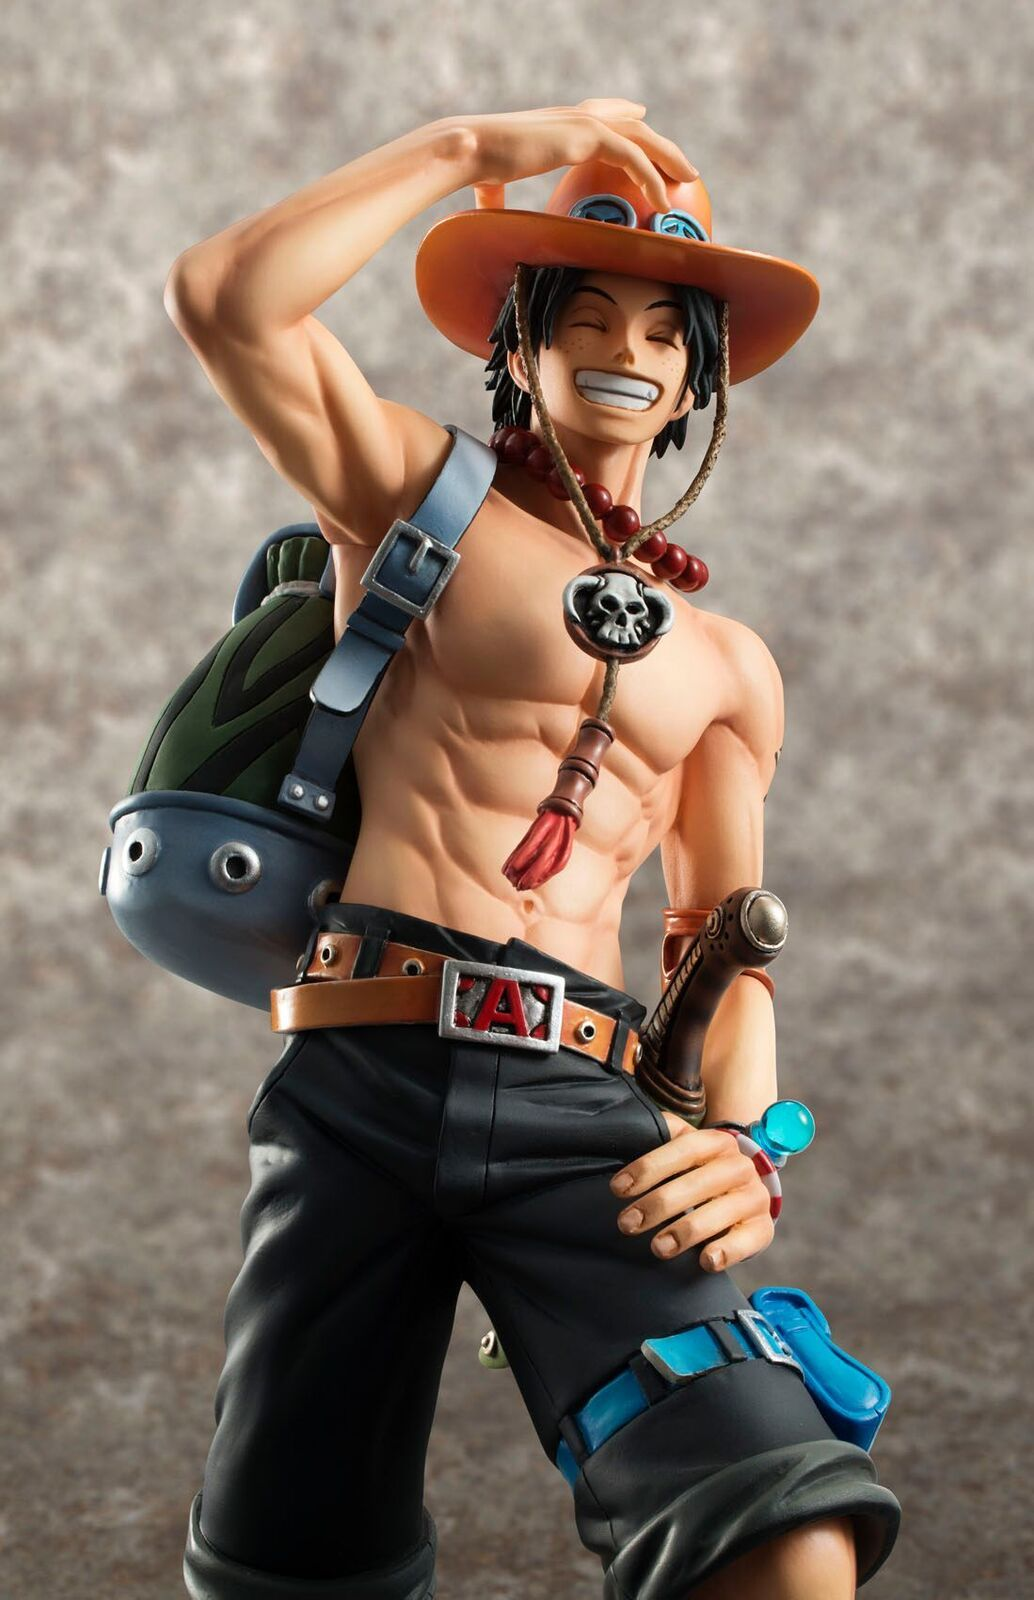 Toys & Hobbies Anime One Piece Monkey D Luffy Portgas D Ace Sabo Three Brothers Pvc Action Figure Resin Collection Model Toy Gifts Cosplay